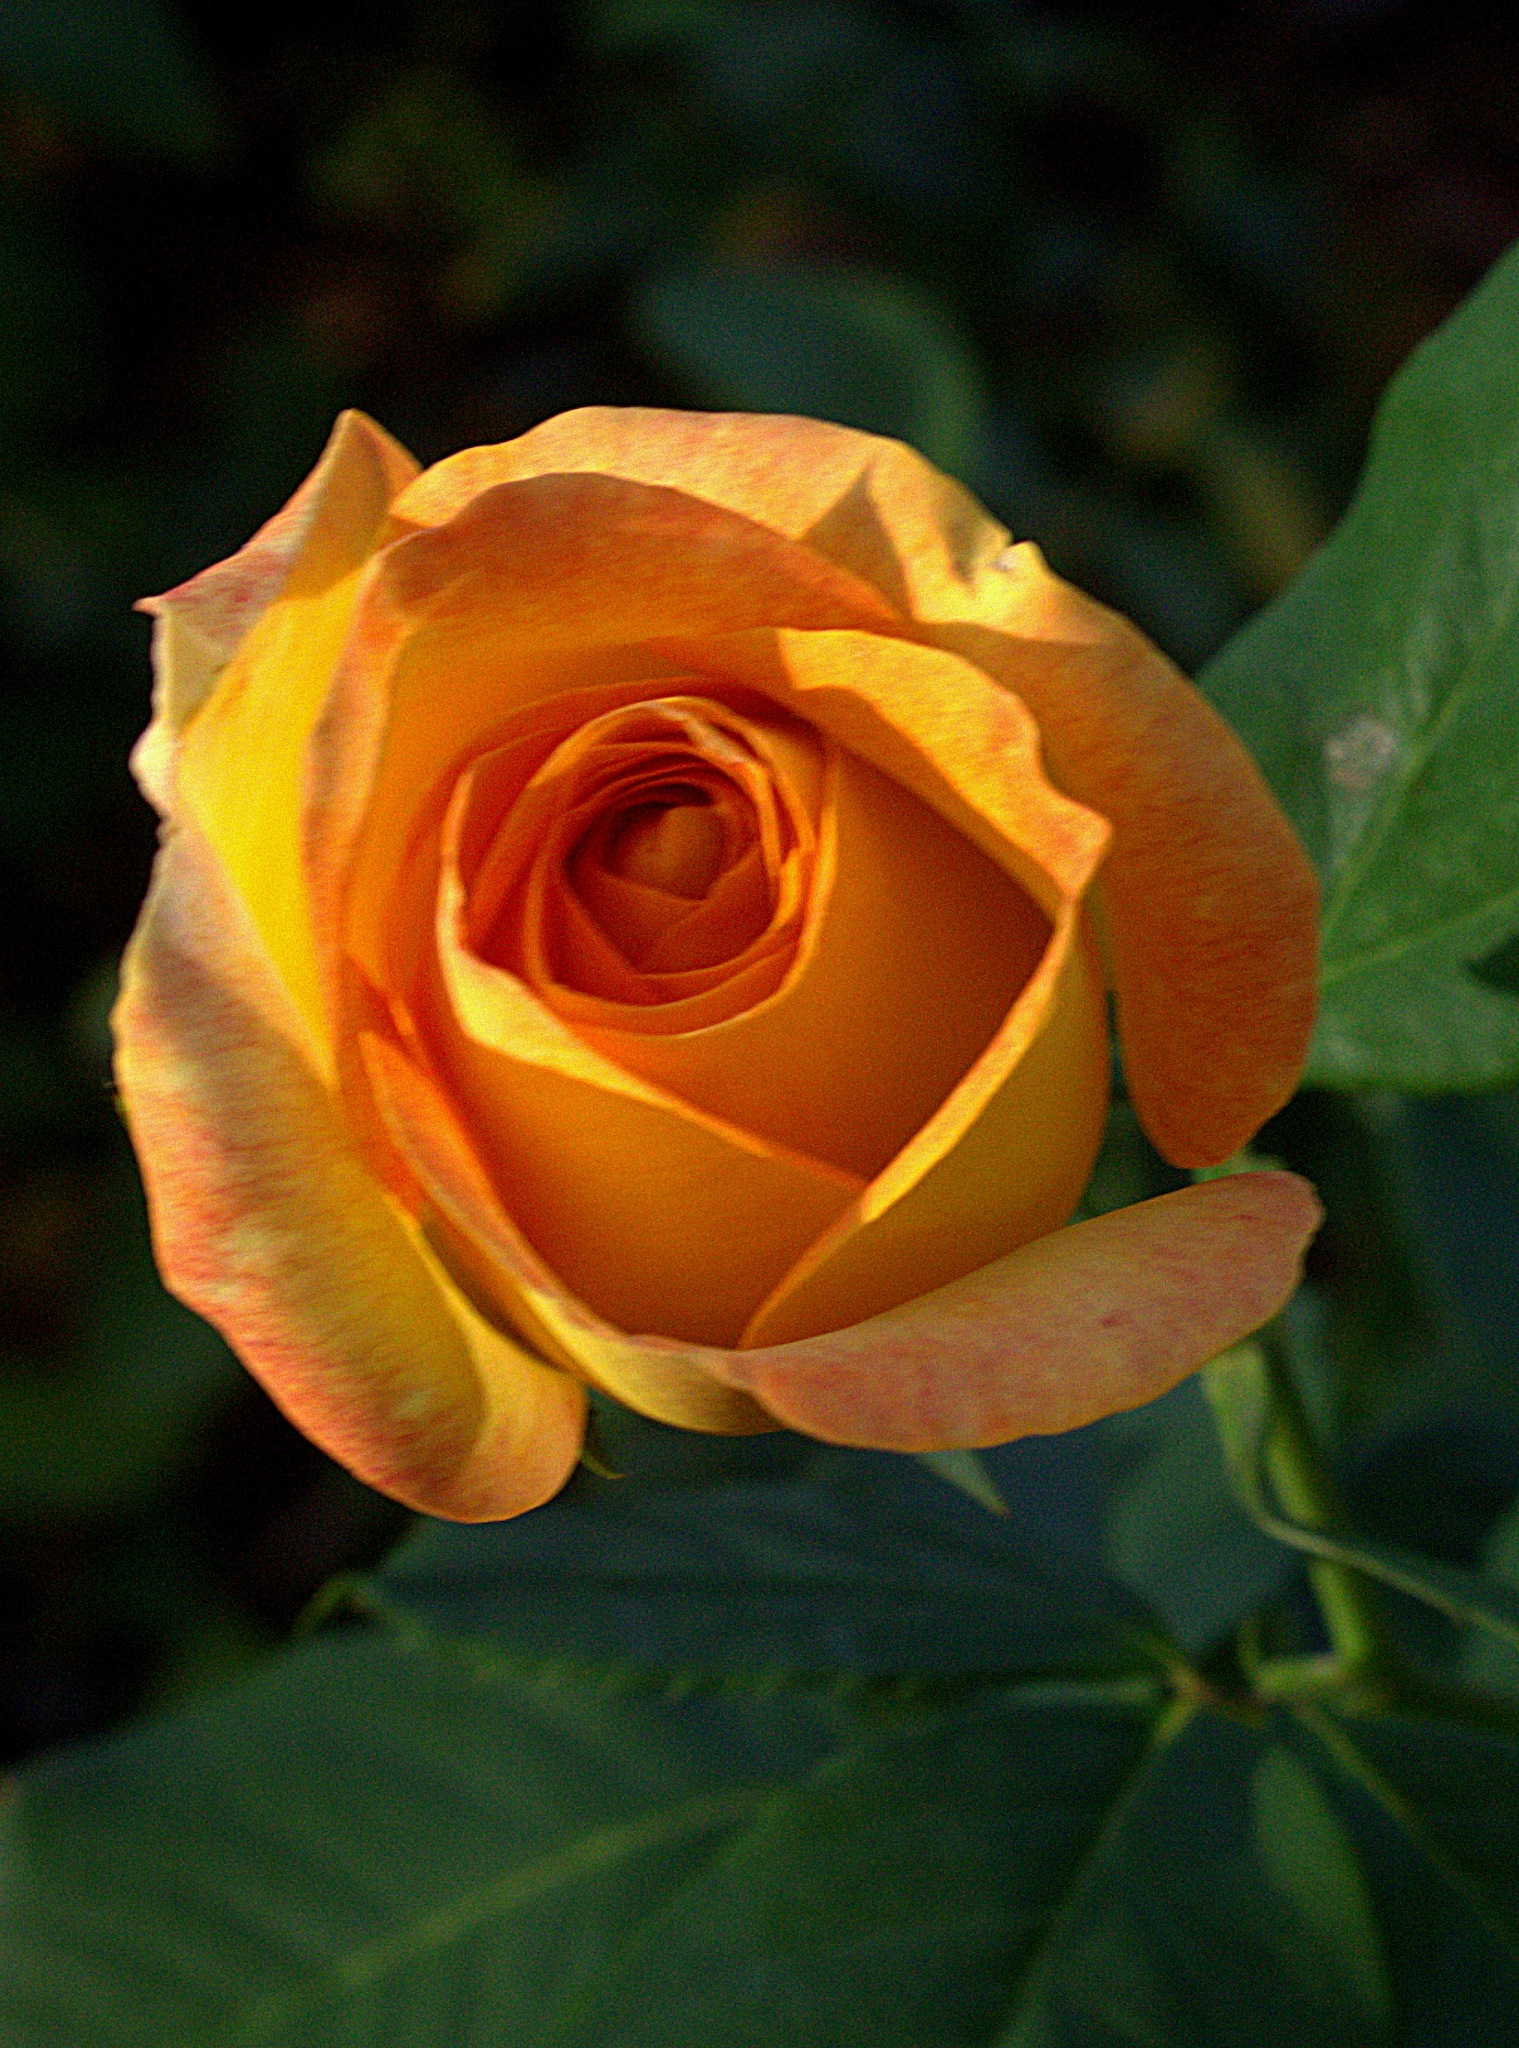 yellow rose by jdwines